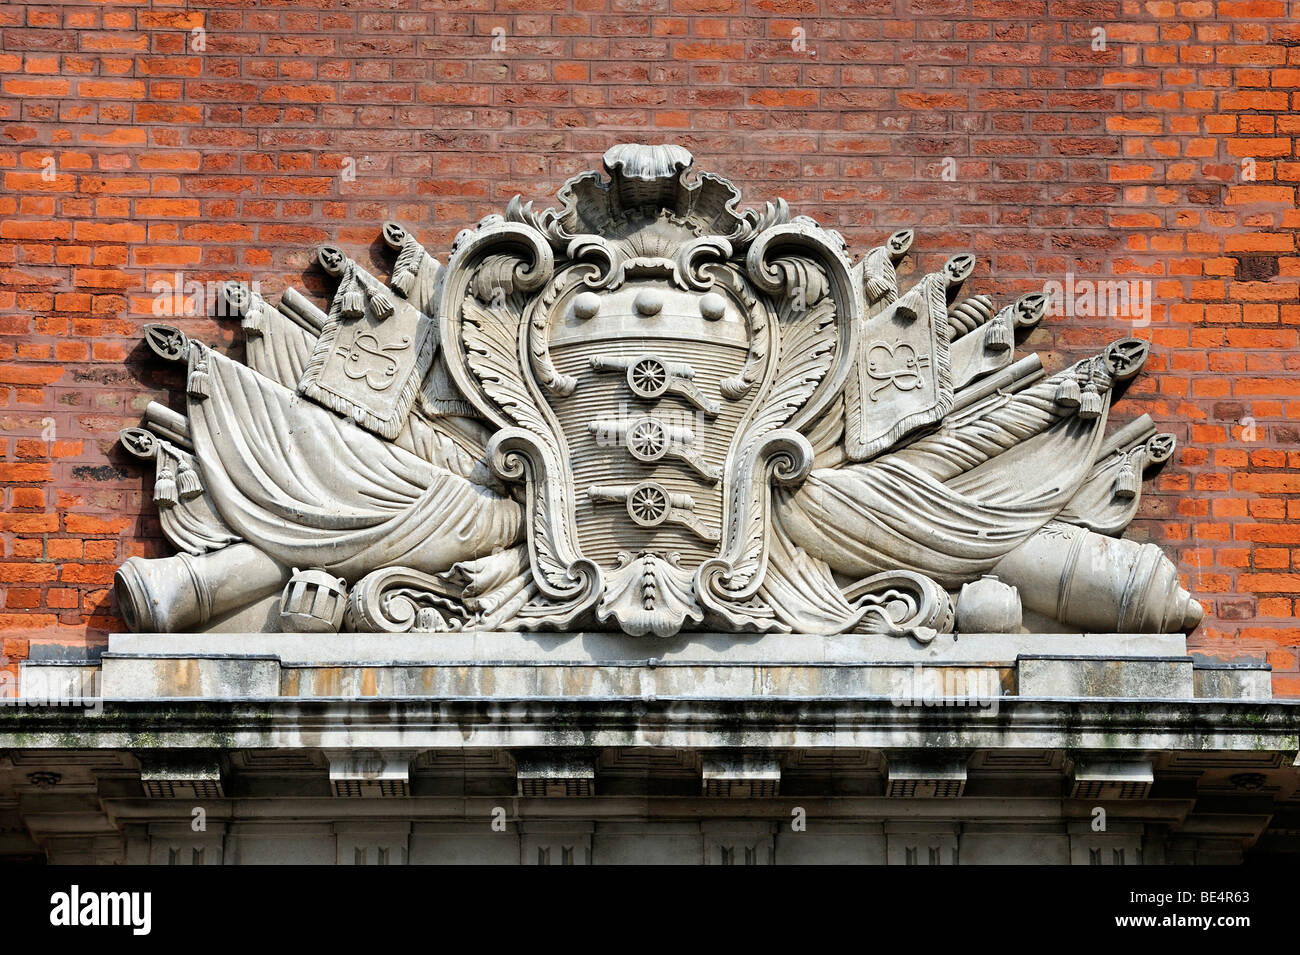 Coat of arms as a stone carving on a building in the Tower of London, England, United Kingdom, Europe - Stock Image